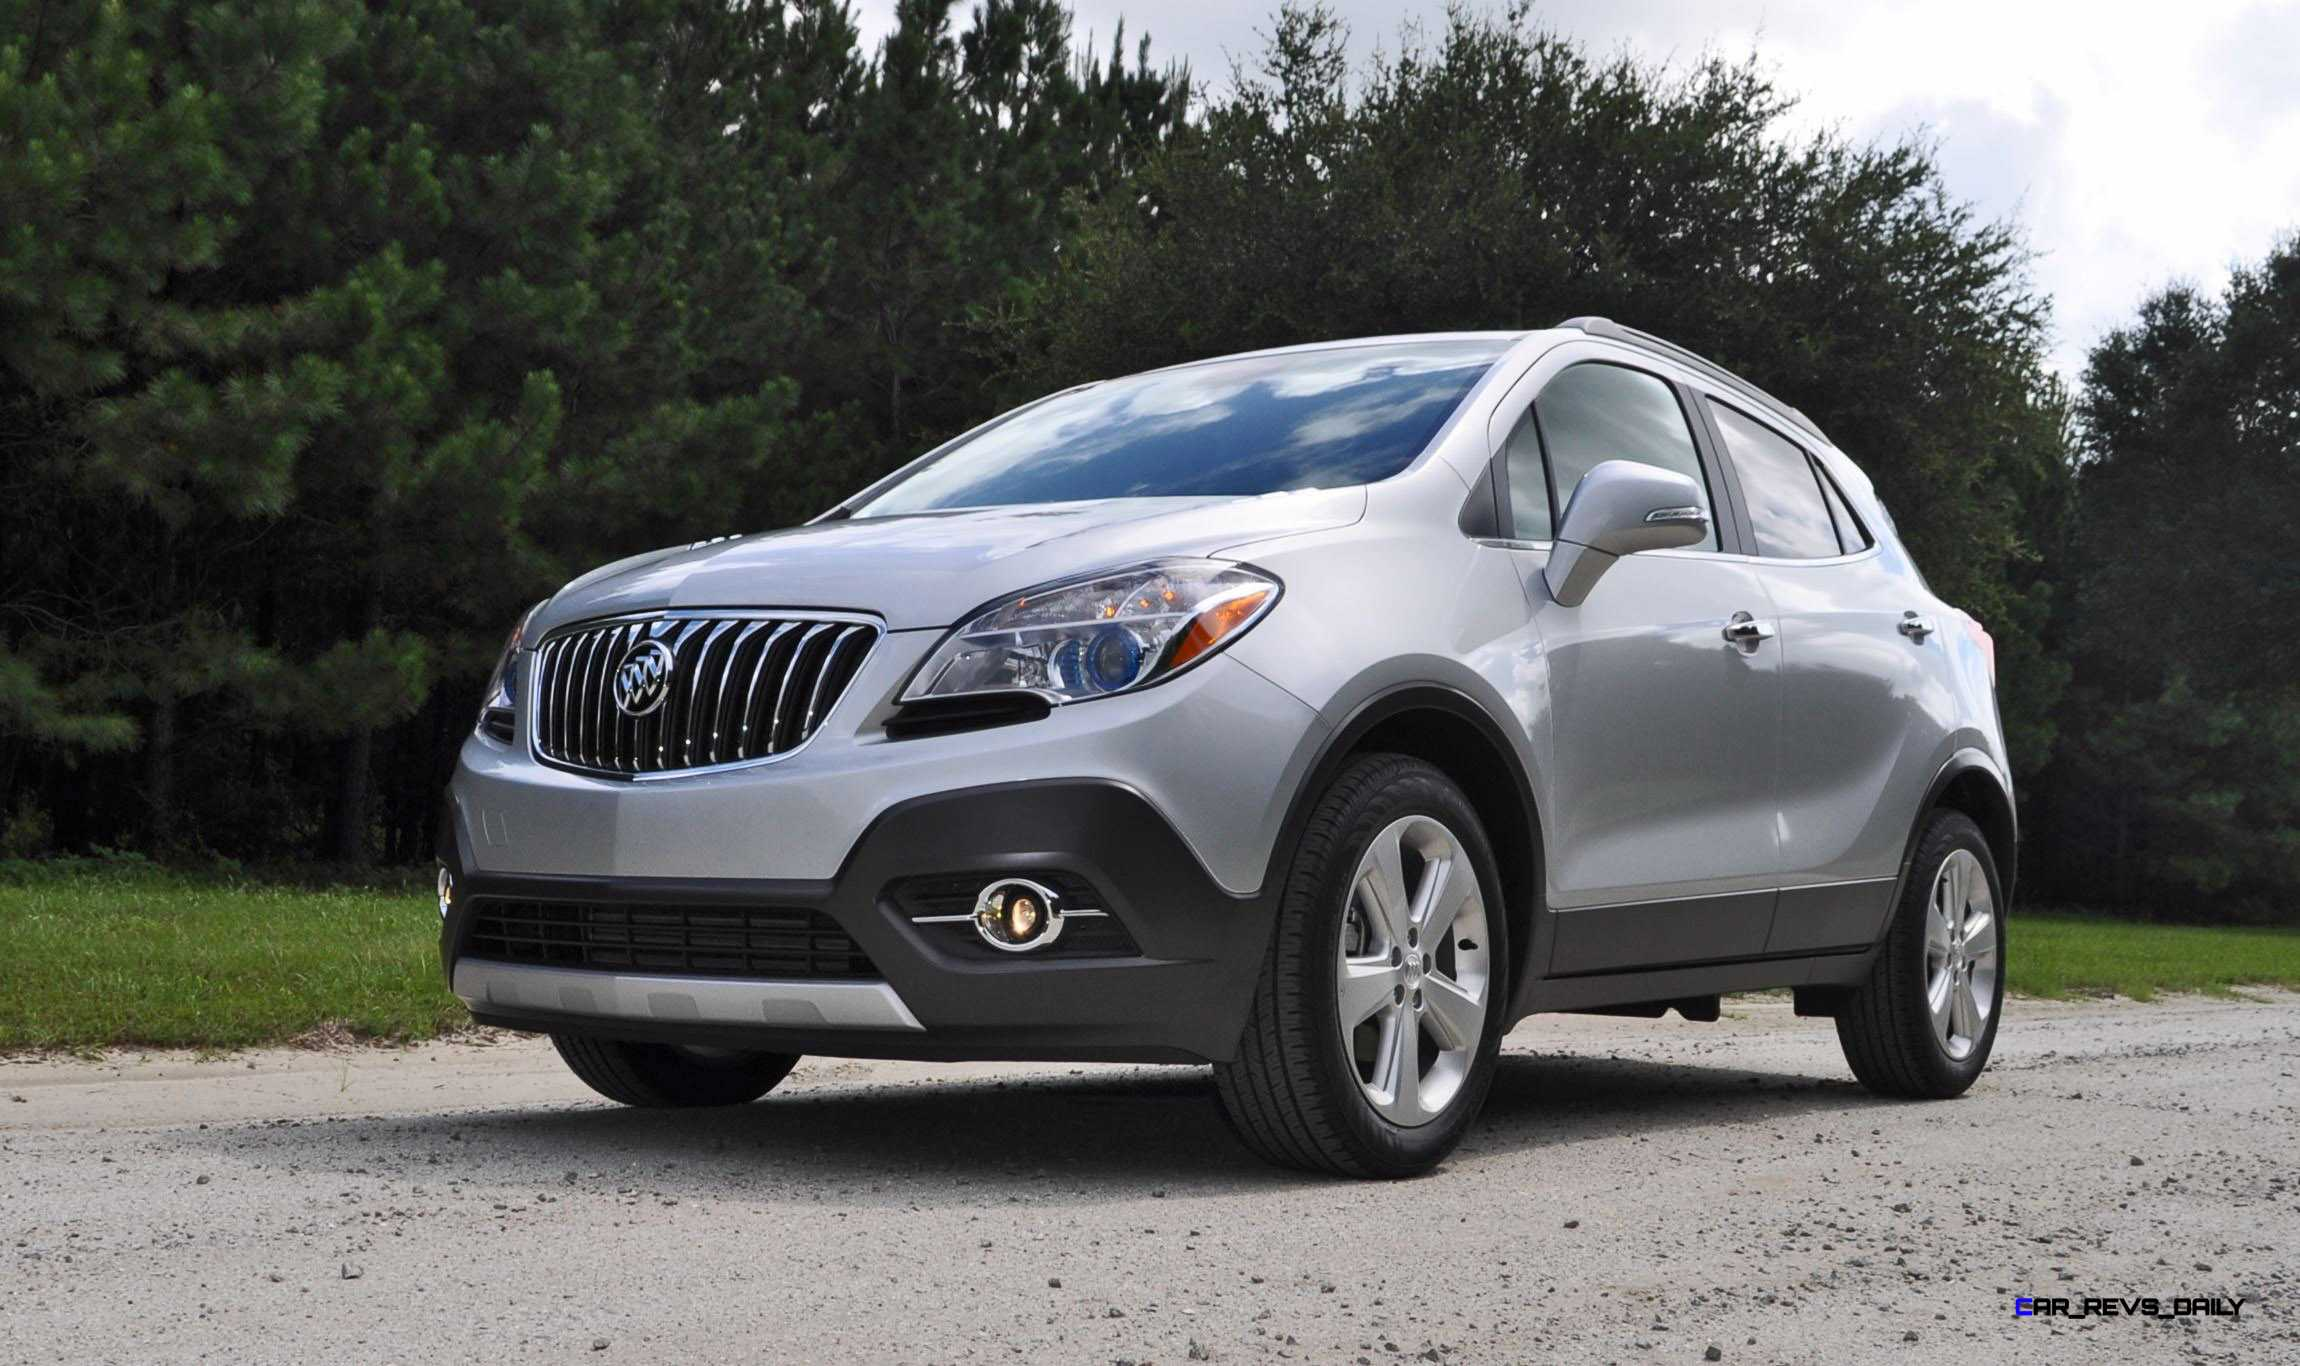 design buick year envision compact suv exterior mov previous small luxury